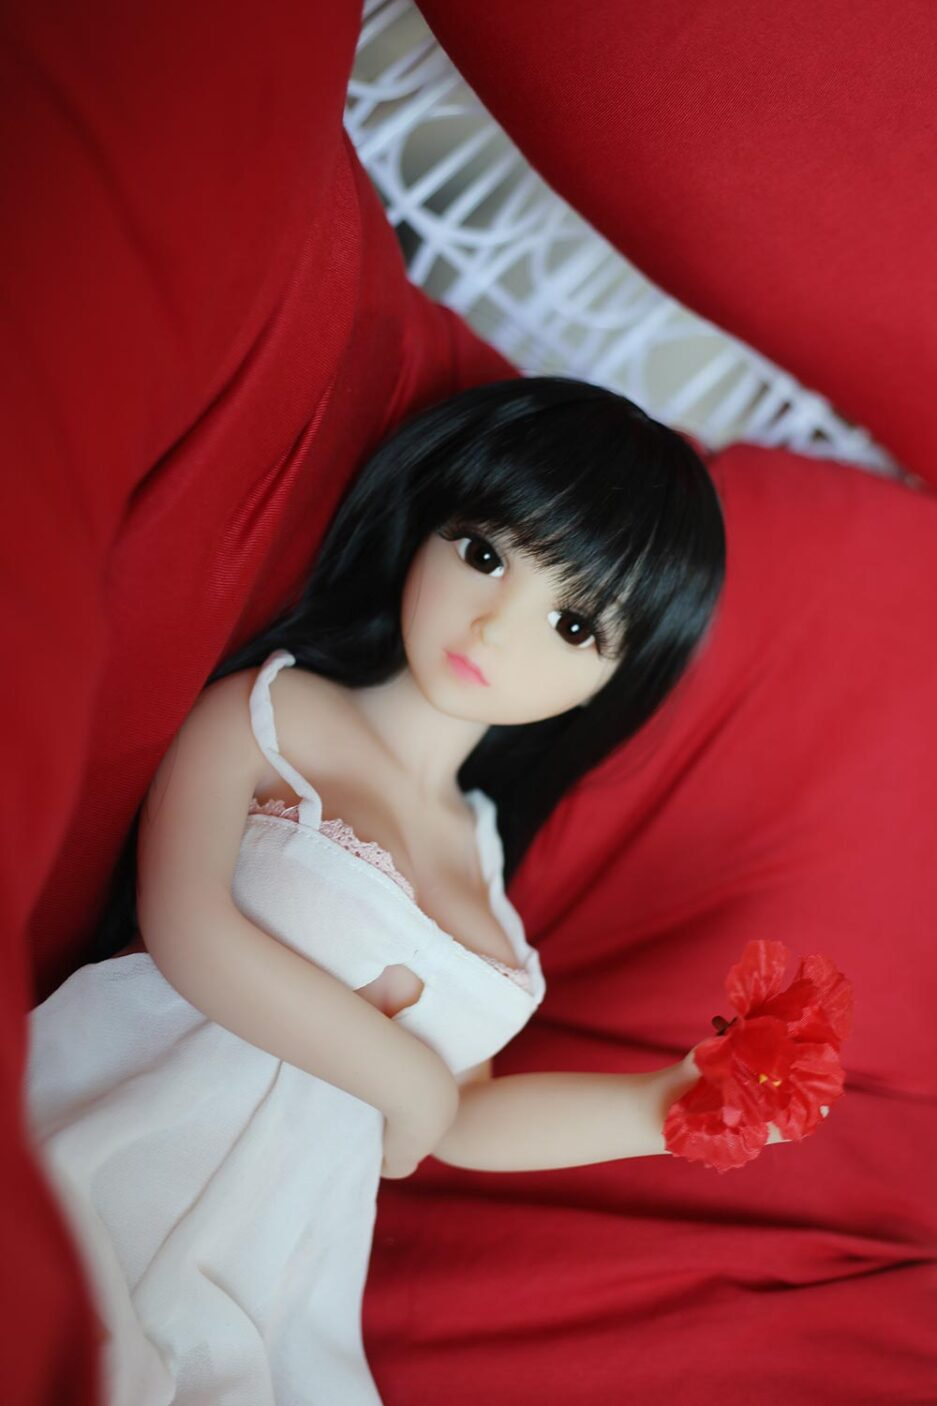 Mini sex doll with black long hair and red flower in hand